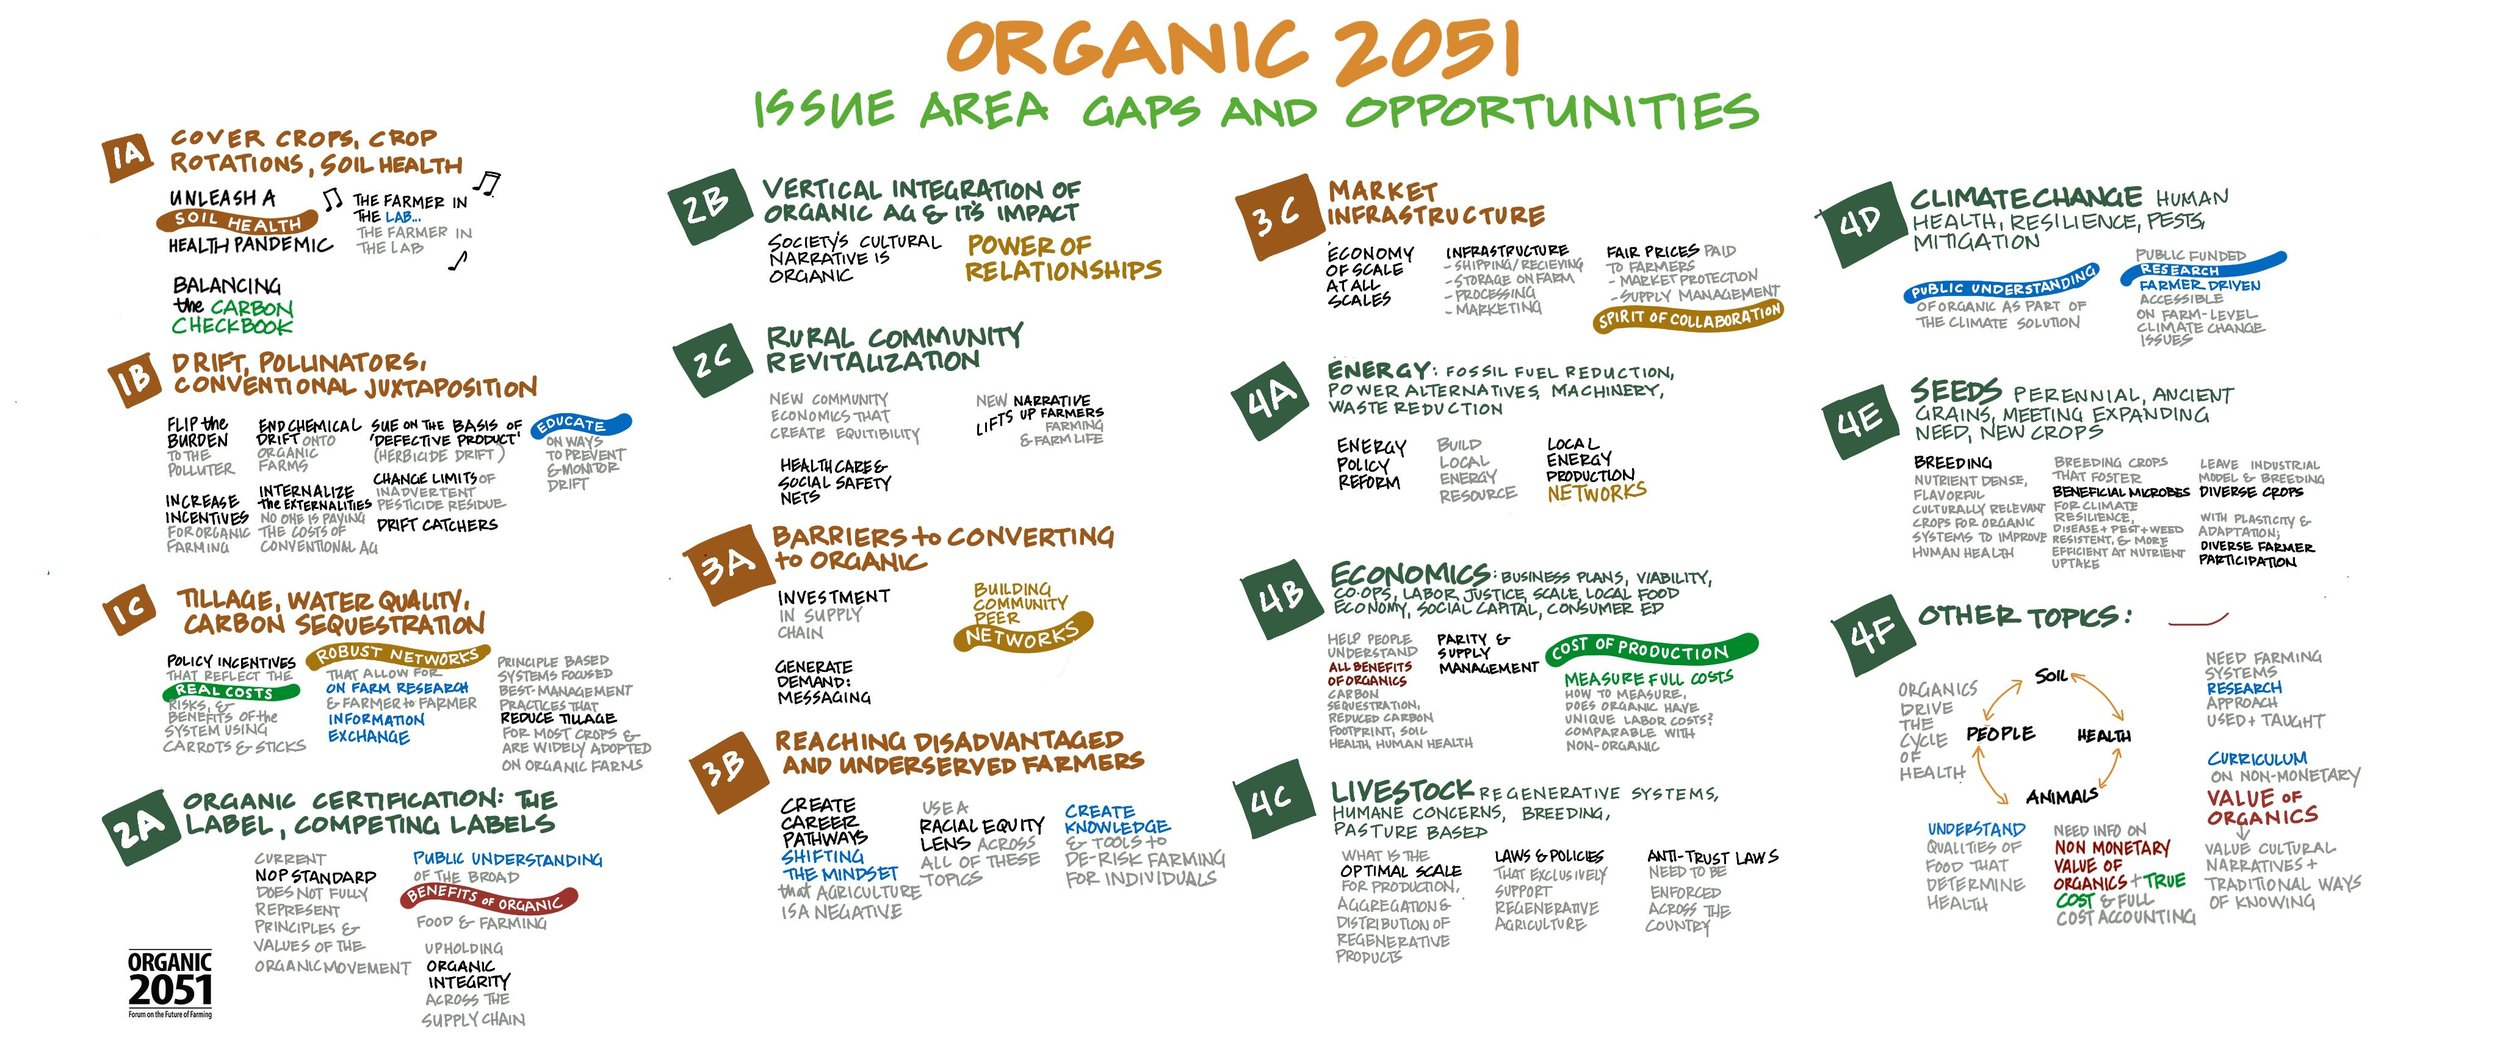 Gaps and Opportunities Organic 2051.jpg